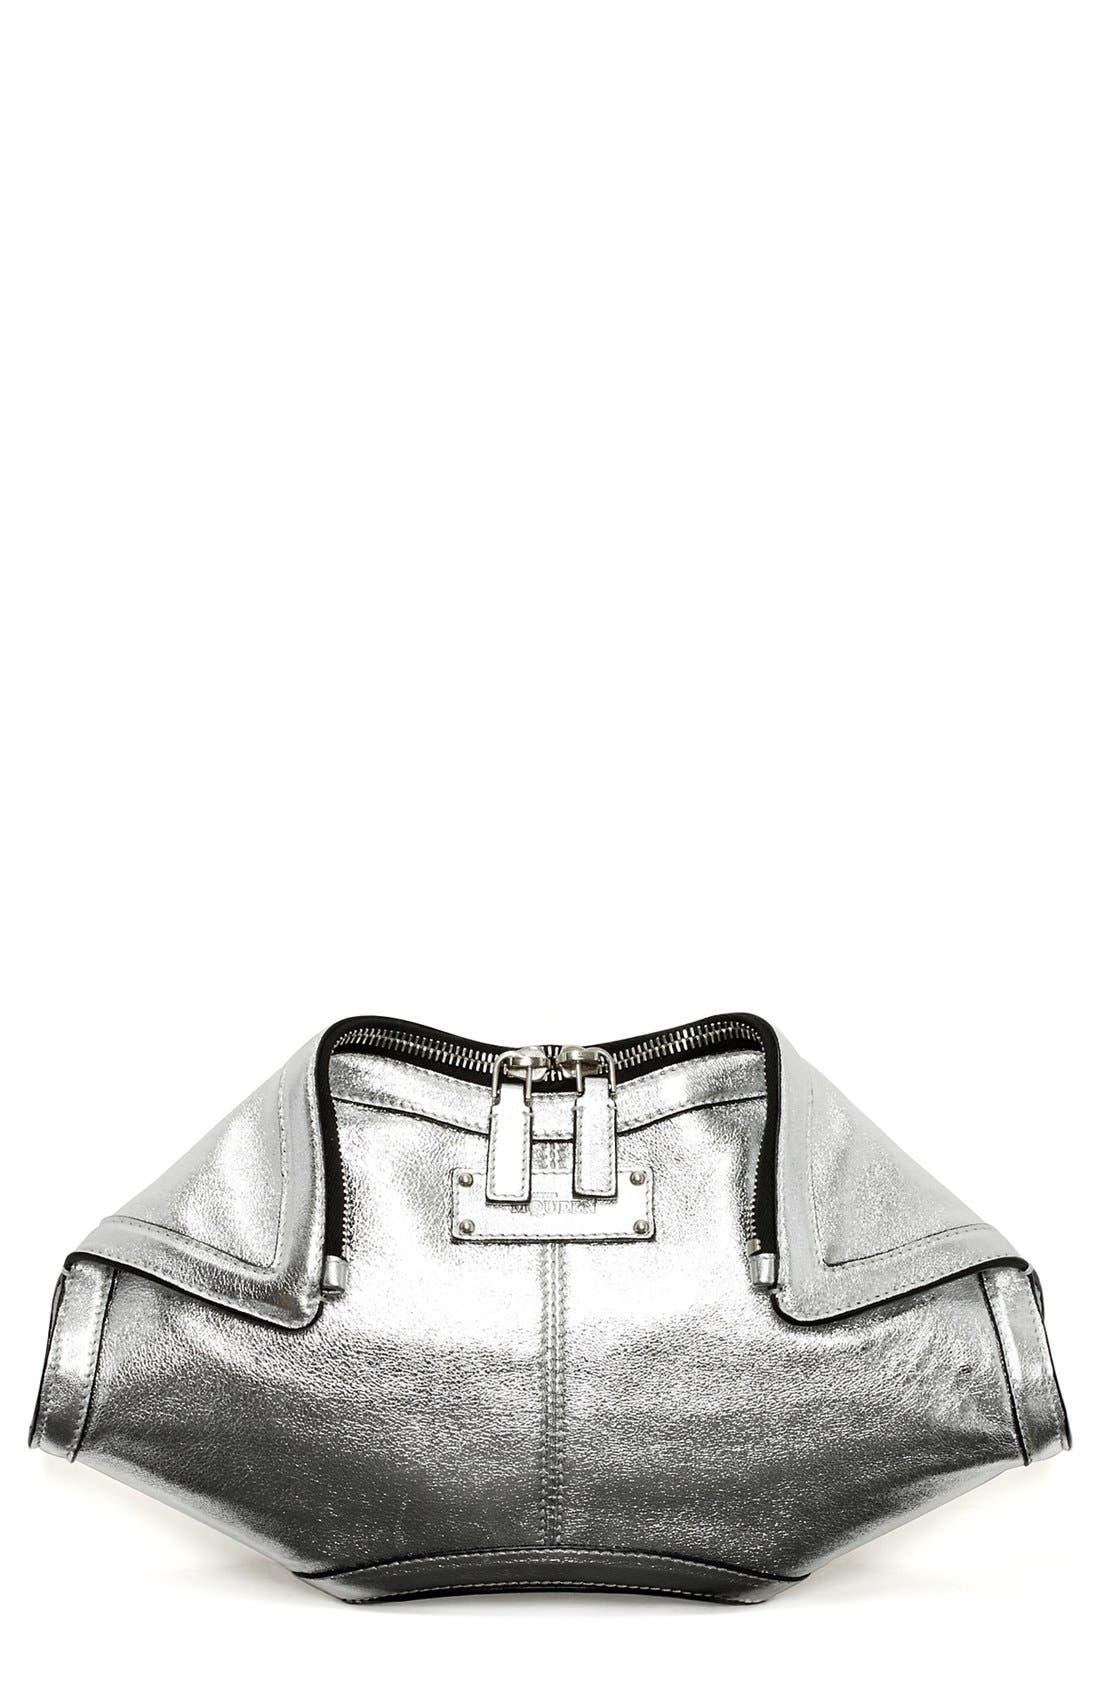 Main Image - Alexander McQueen 'De Manta - Small' Metallic Clutch